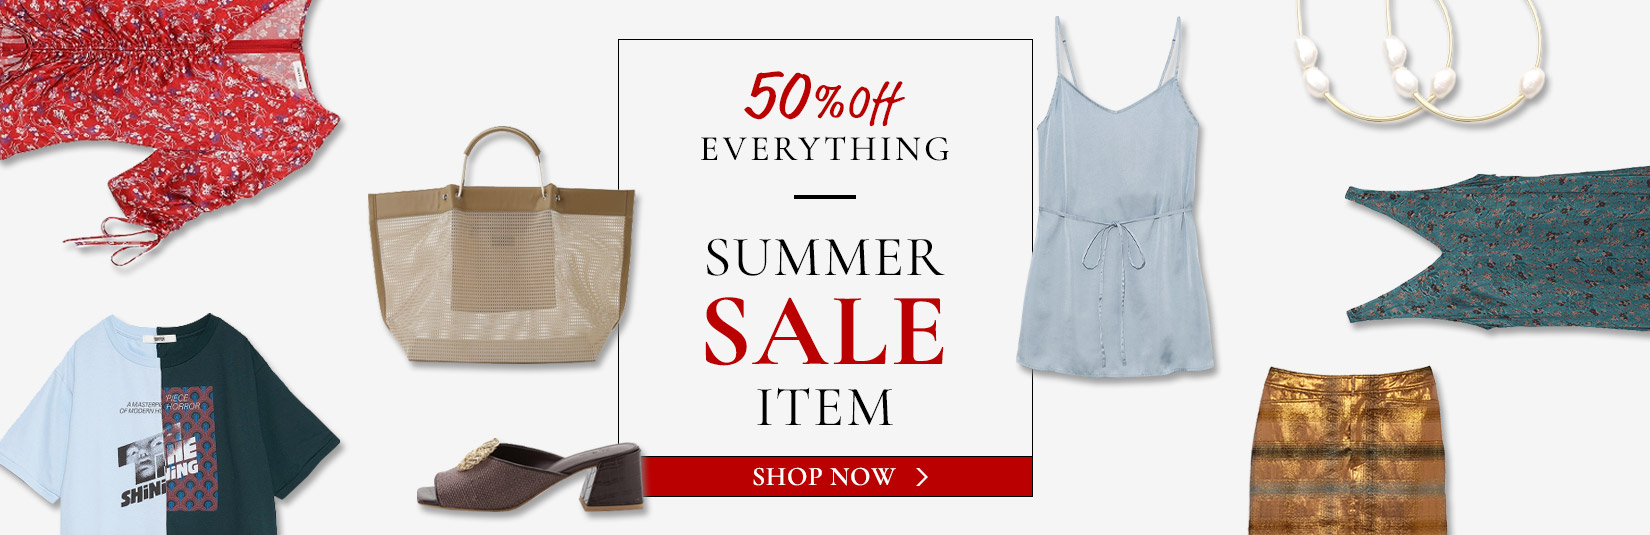 All 50%OFFで買えるSUMMER SALE ITEM